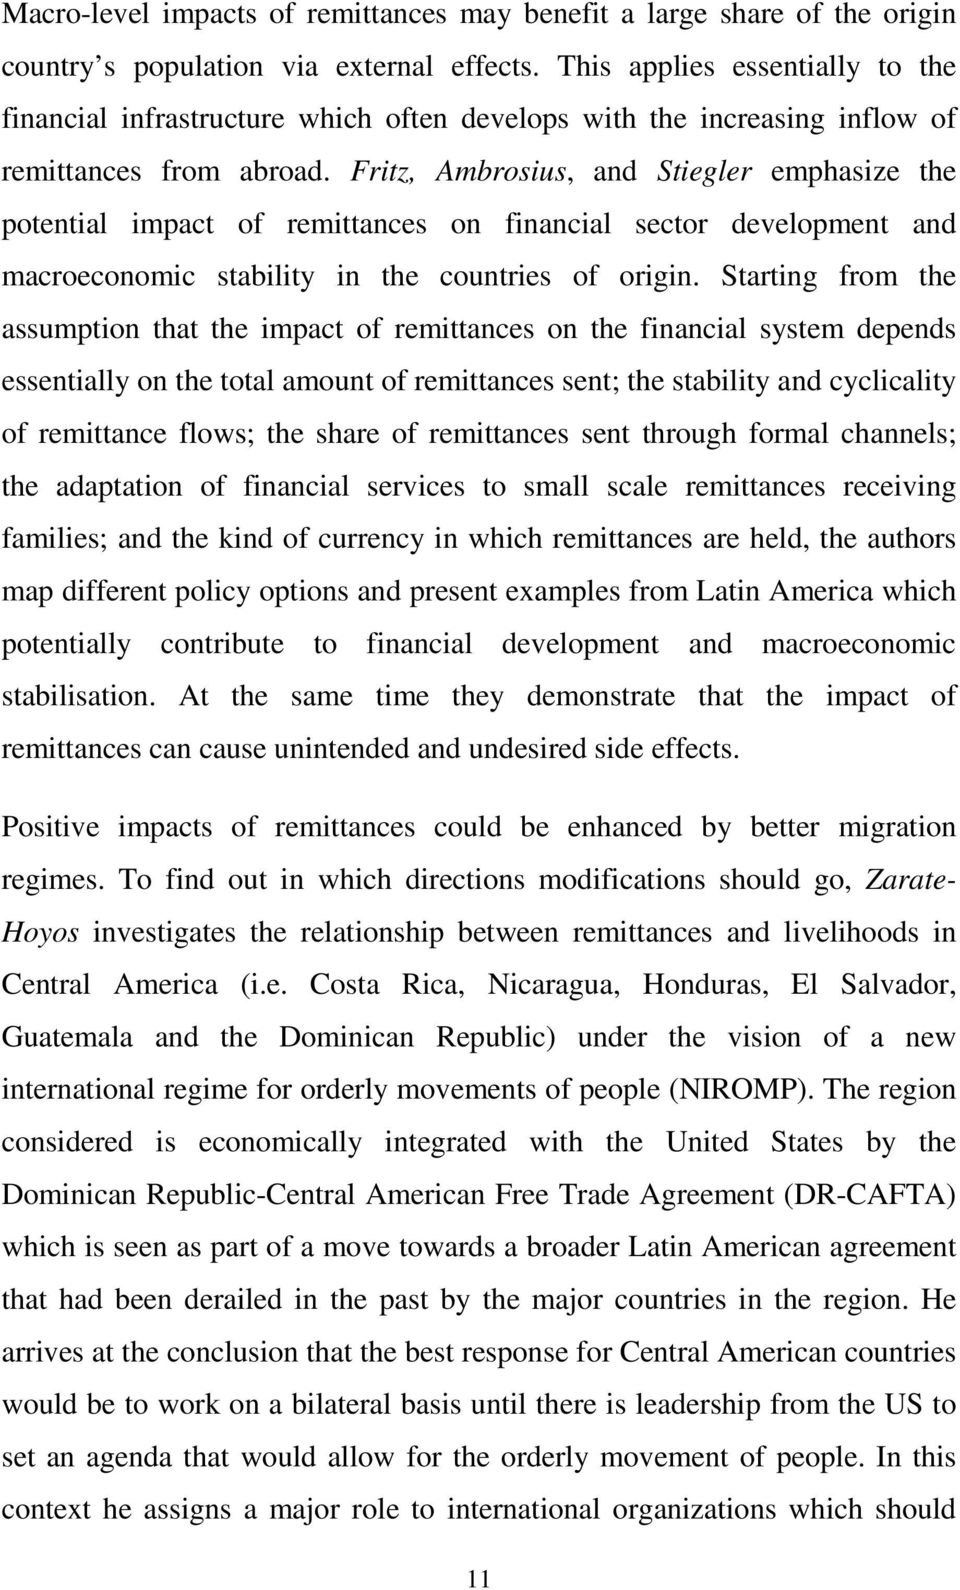 Fritz, Ambrosius, and Stiegler emphasize the potential impact of remittances on financial sector development and macroeconomic stability in the countries of origin.